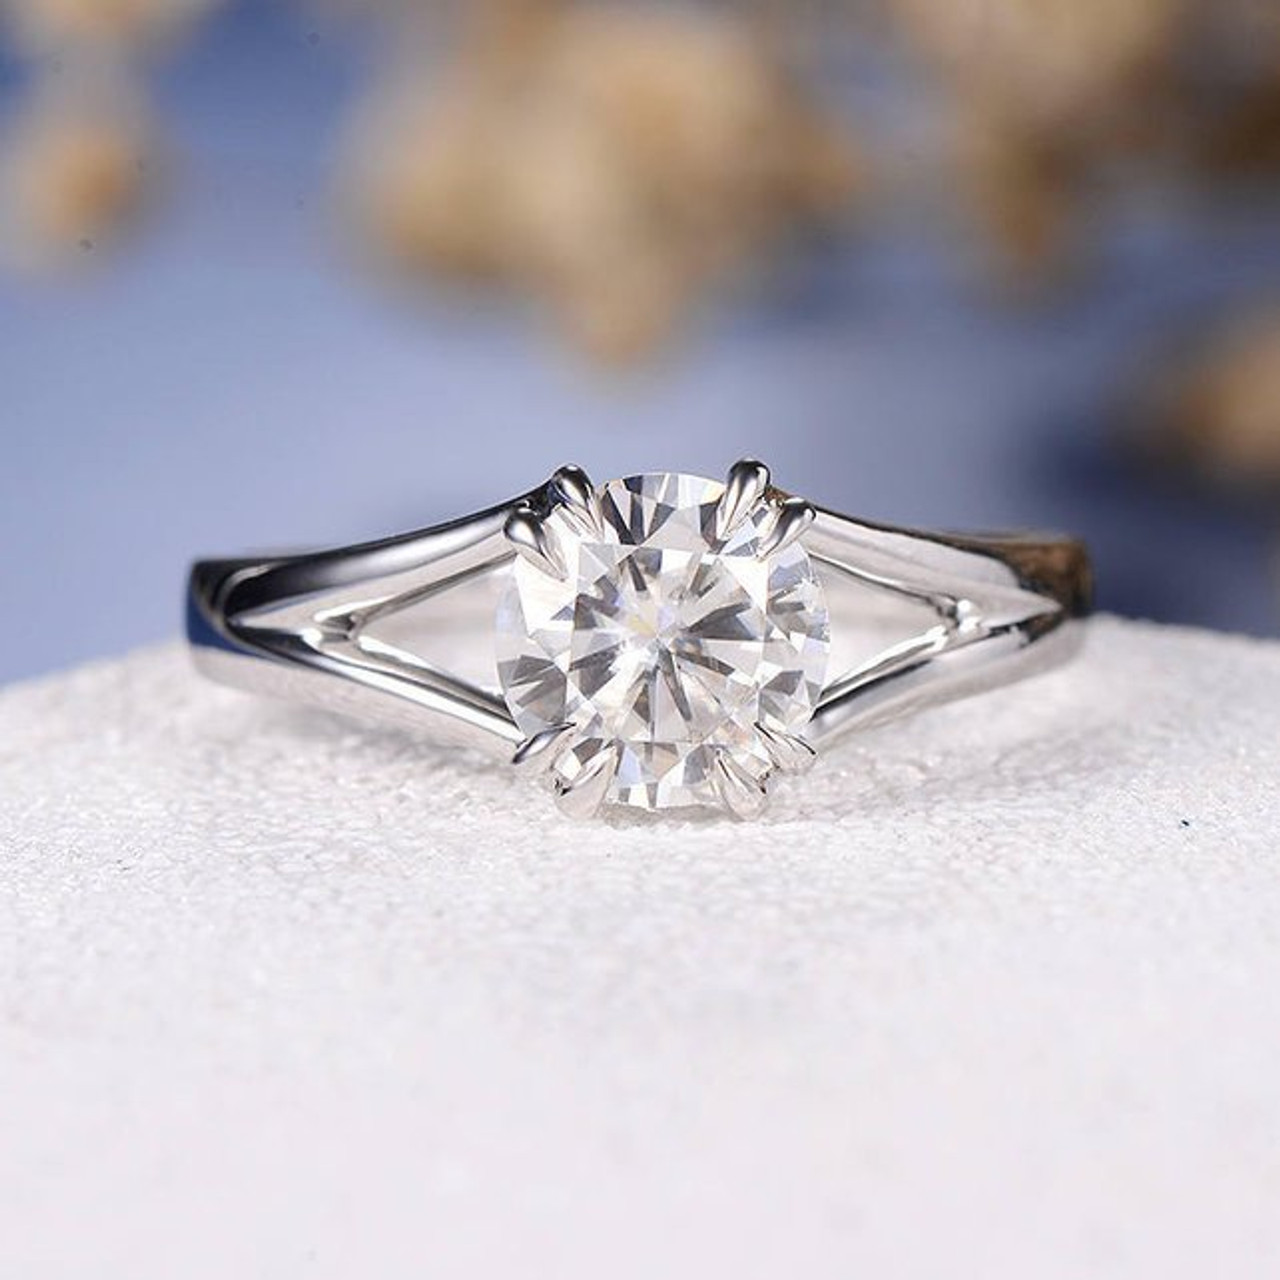 dc6c7292153311 7mm Round Cut Moissanite Solitaire White Gold Engagement Ring